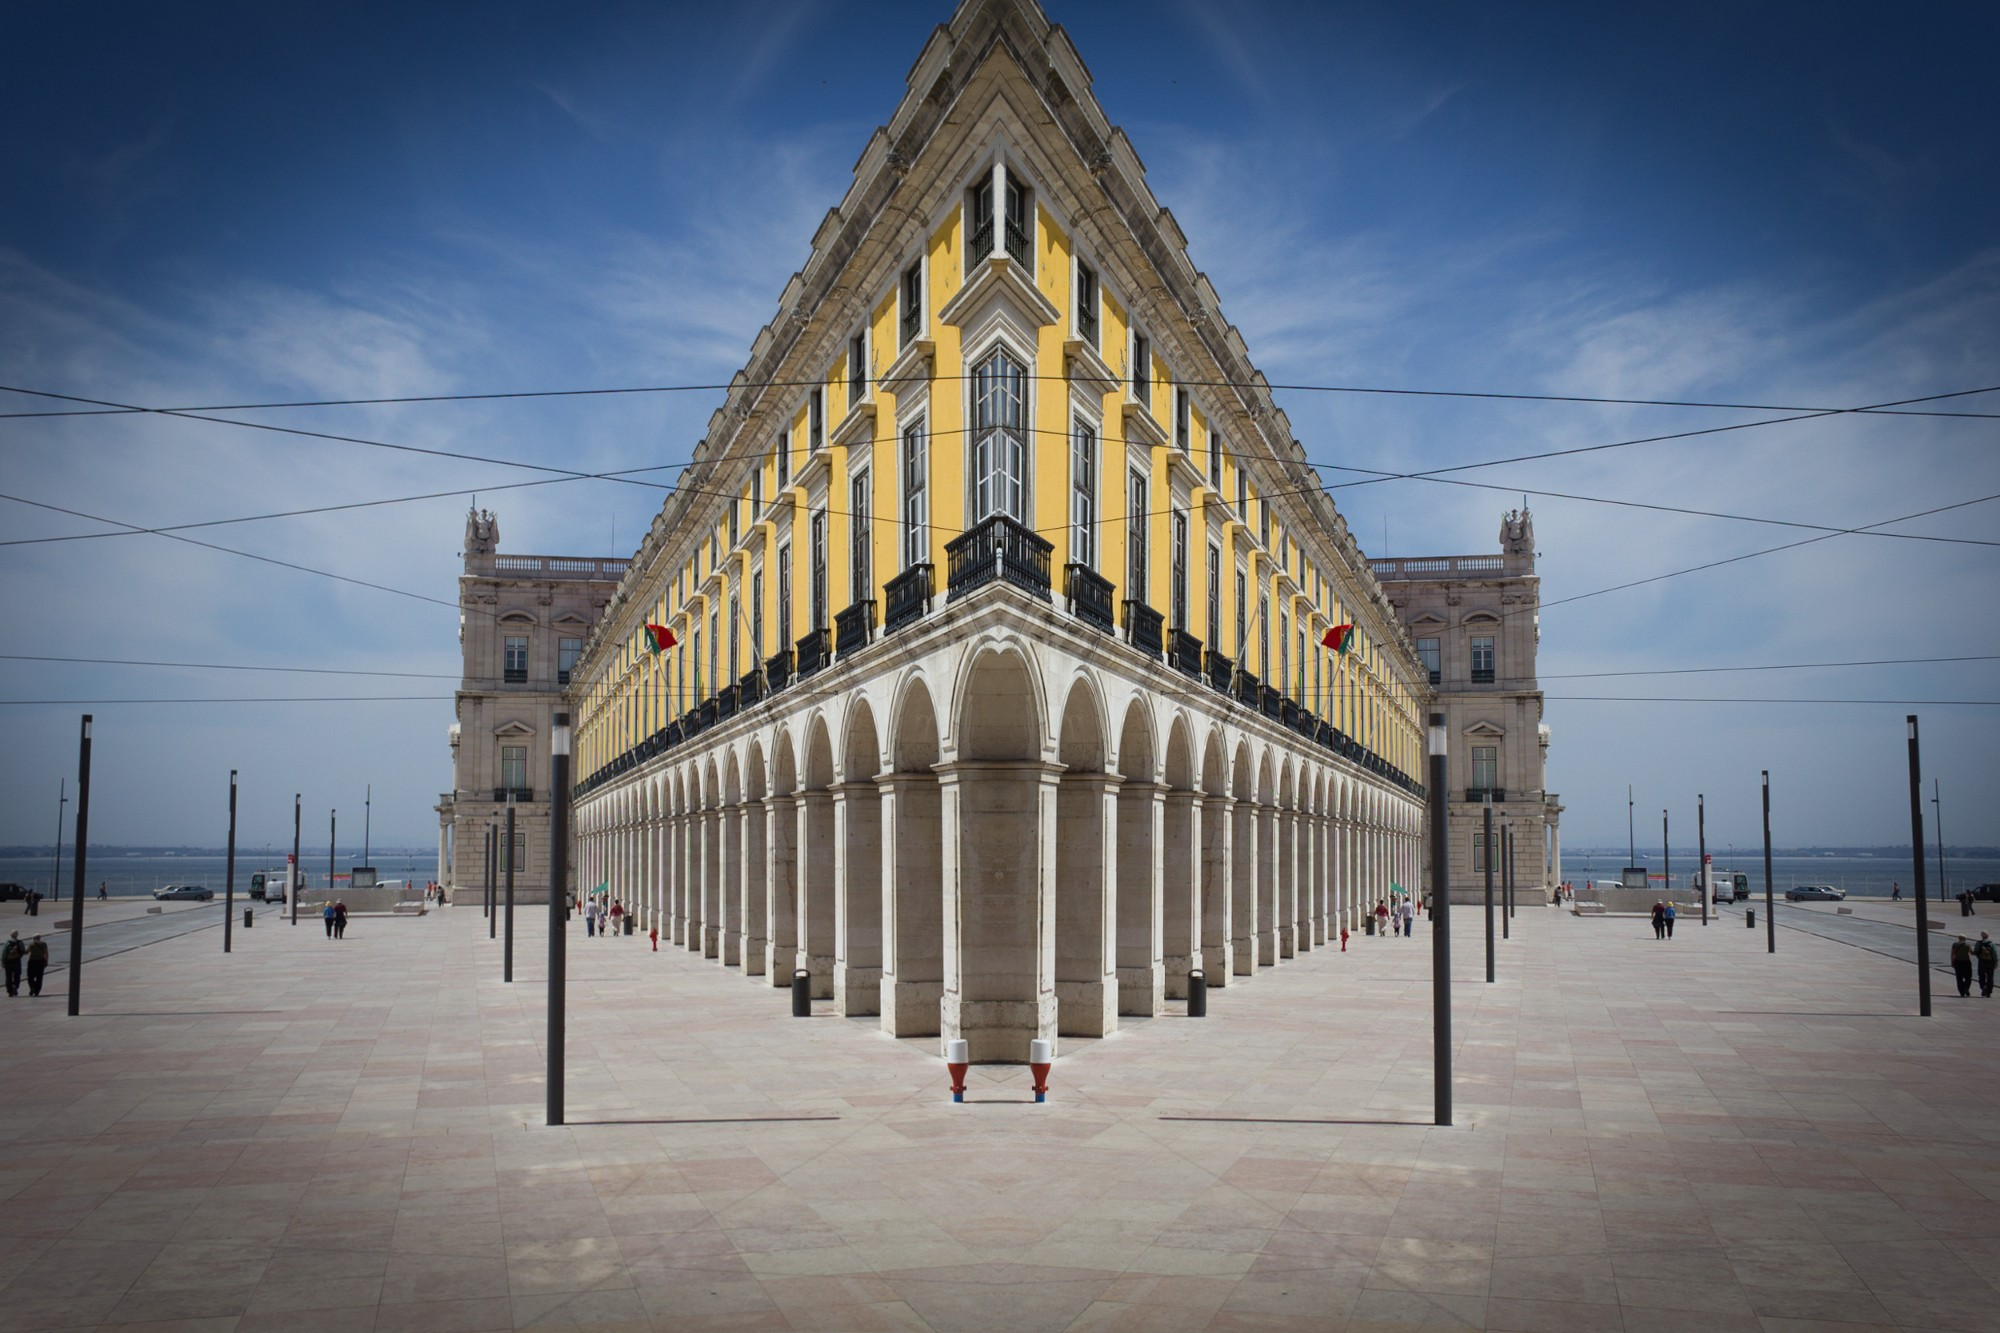 architectural photography with a symmetrical twist